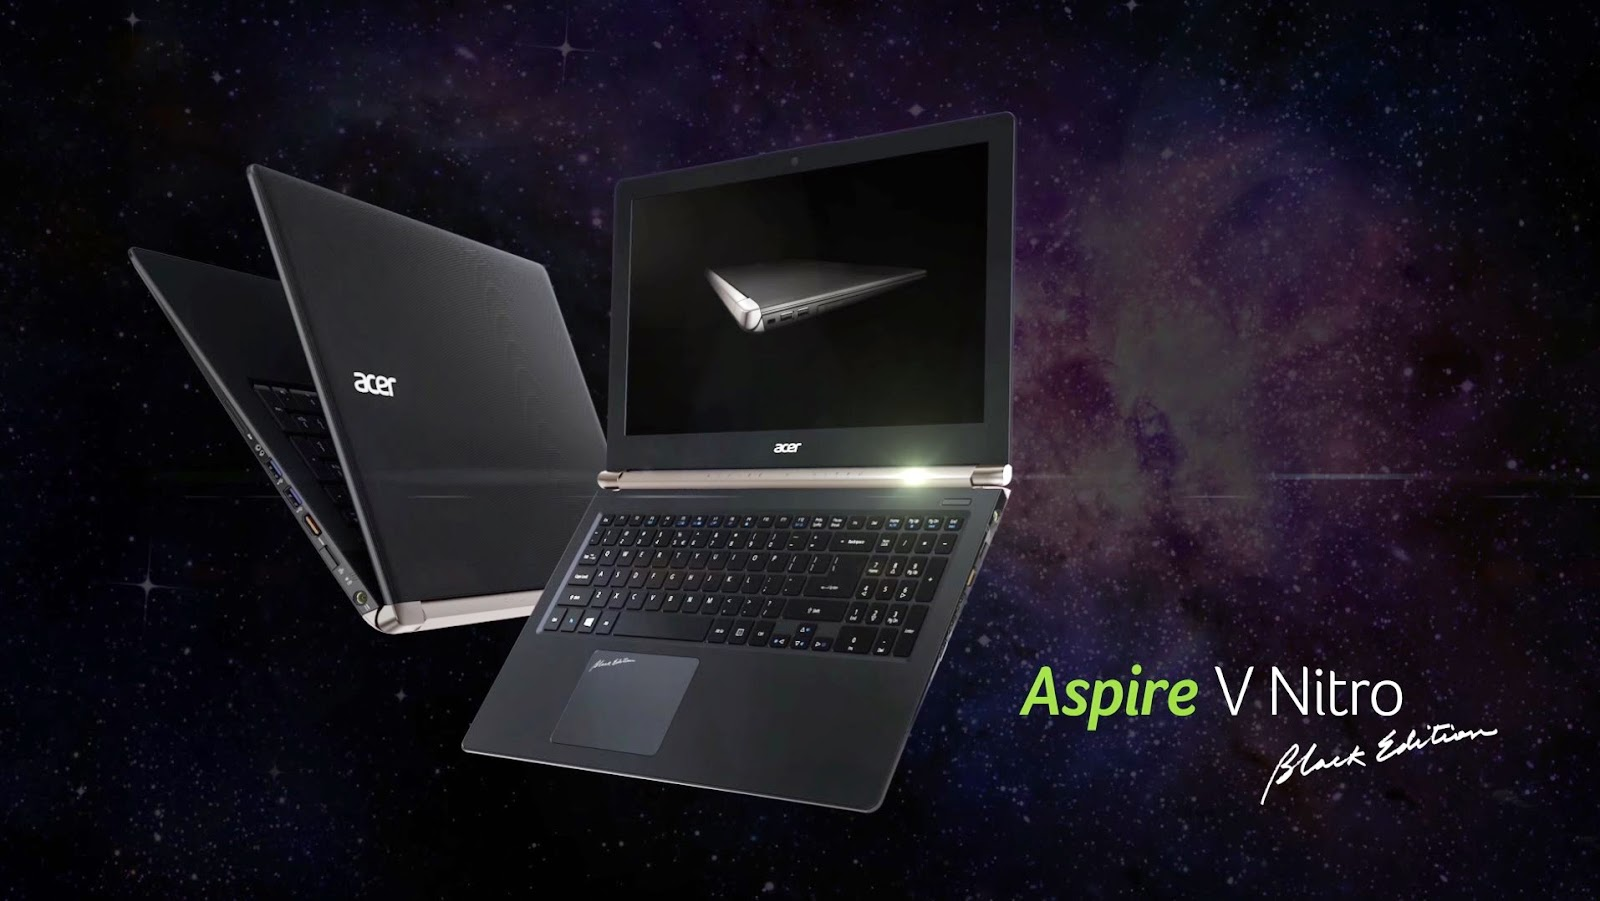 Acer V Nitro Black Edition Series Notebooks